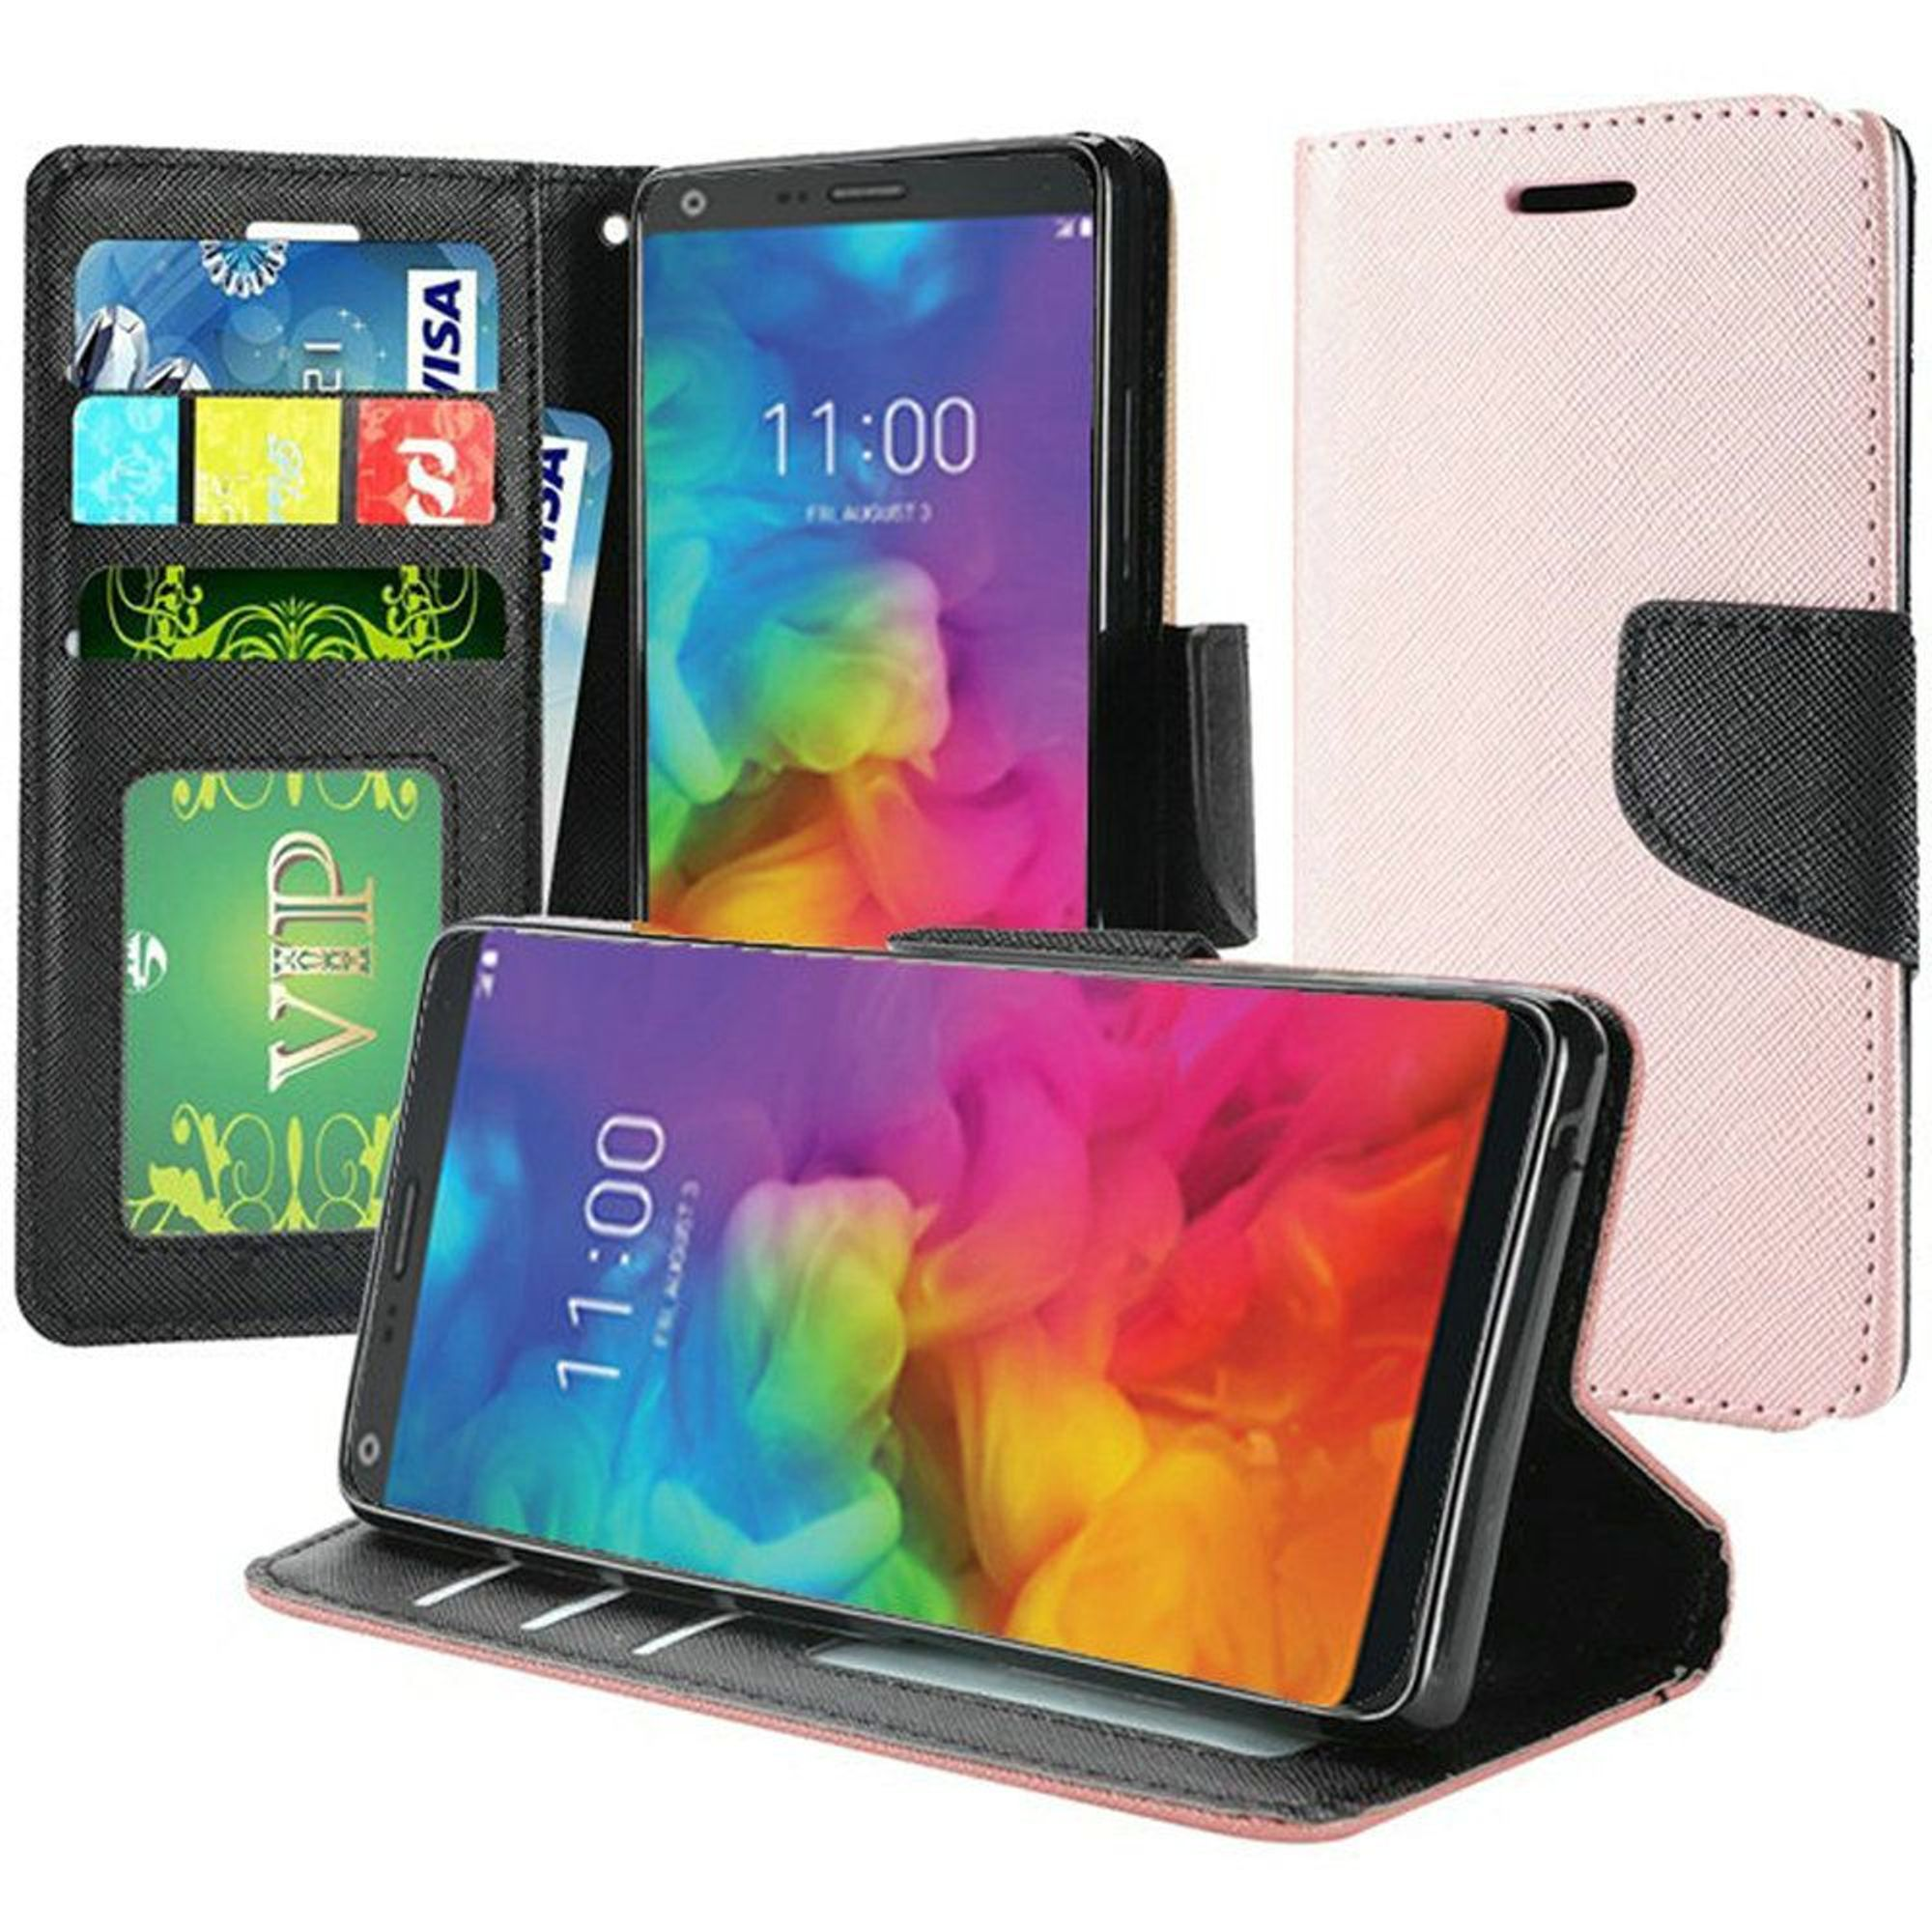 LG Q7 Plus Case, by Insten Folio Flip Leather Case Cover Lanyard w/Stand/[Card Slot] Wallet Flap Pouch/Photo Display For LG Q7 Plus